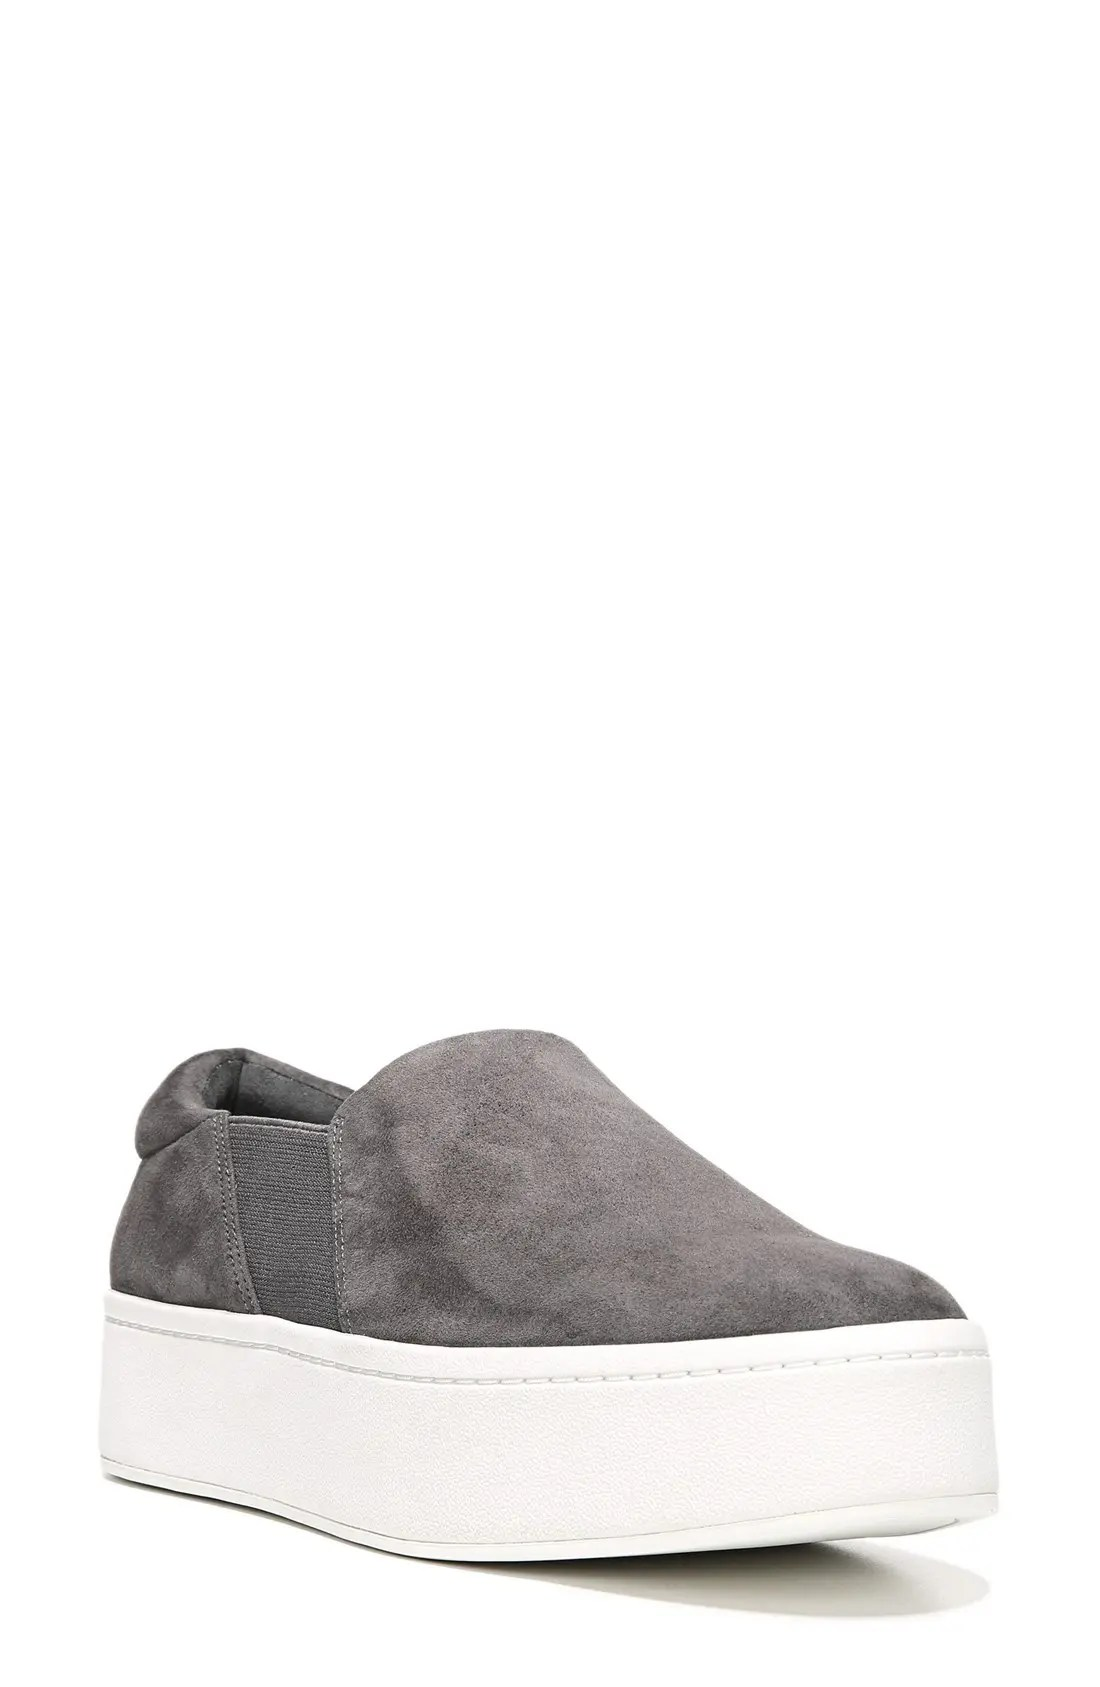 VINCE Warren Slip-On Sneaker, Main, color, STEEL SUEDE